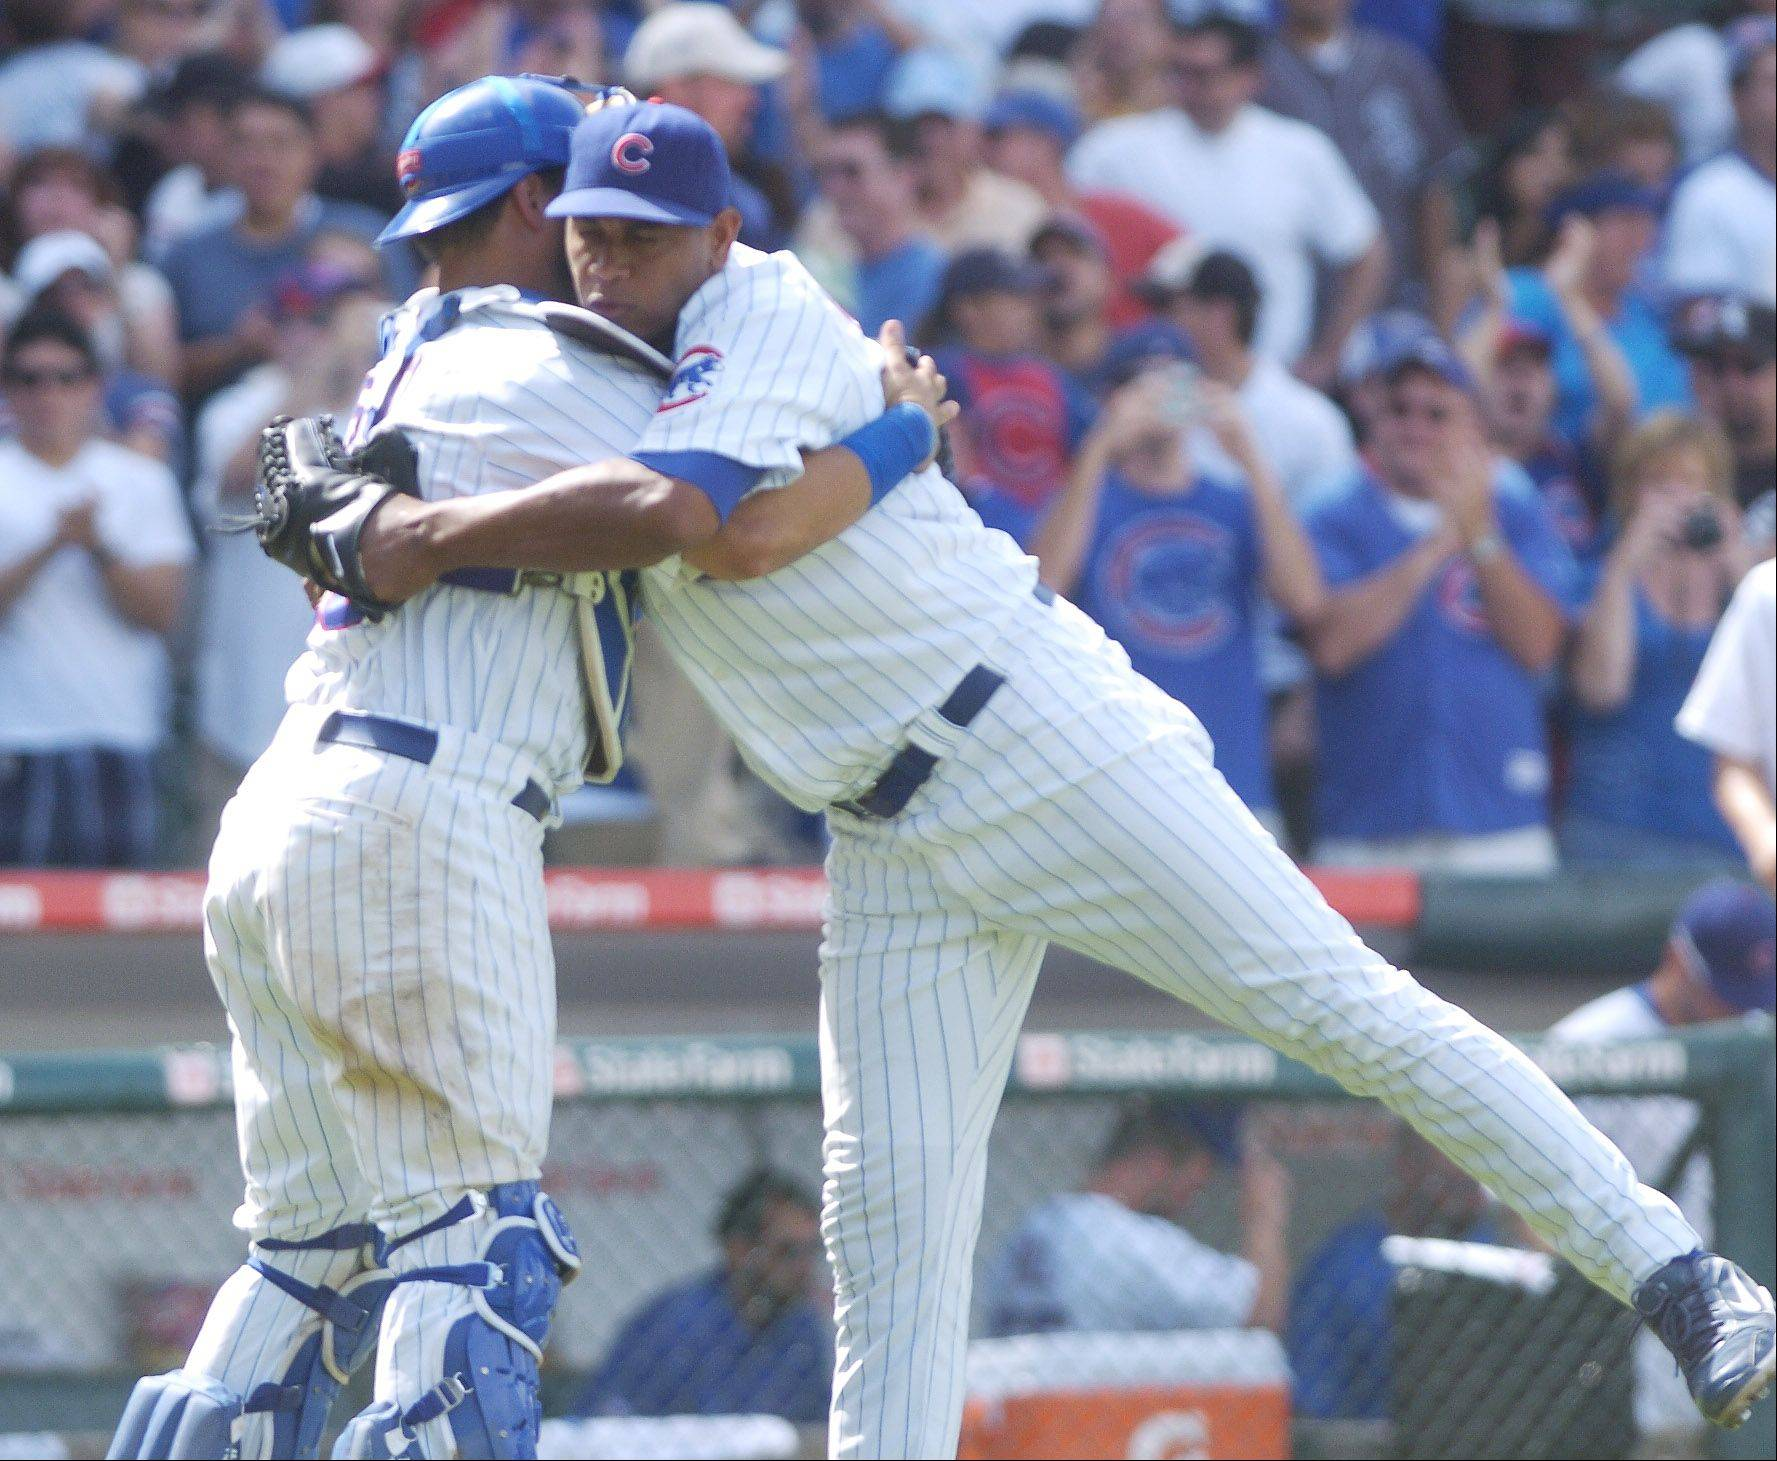 Cubs closer Carlos Marmol gets a hug from catcher Geovany Soto after earning a save while pitching 1-1/3 innings in Sunday's 3-1 victory against the White Sox at Wrigley Field.